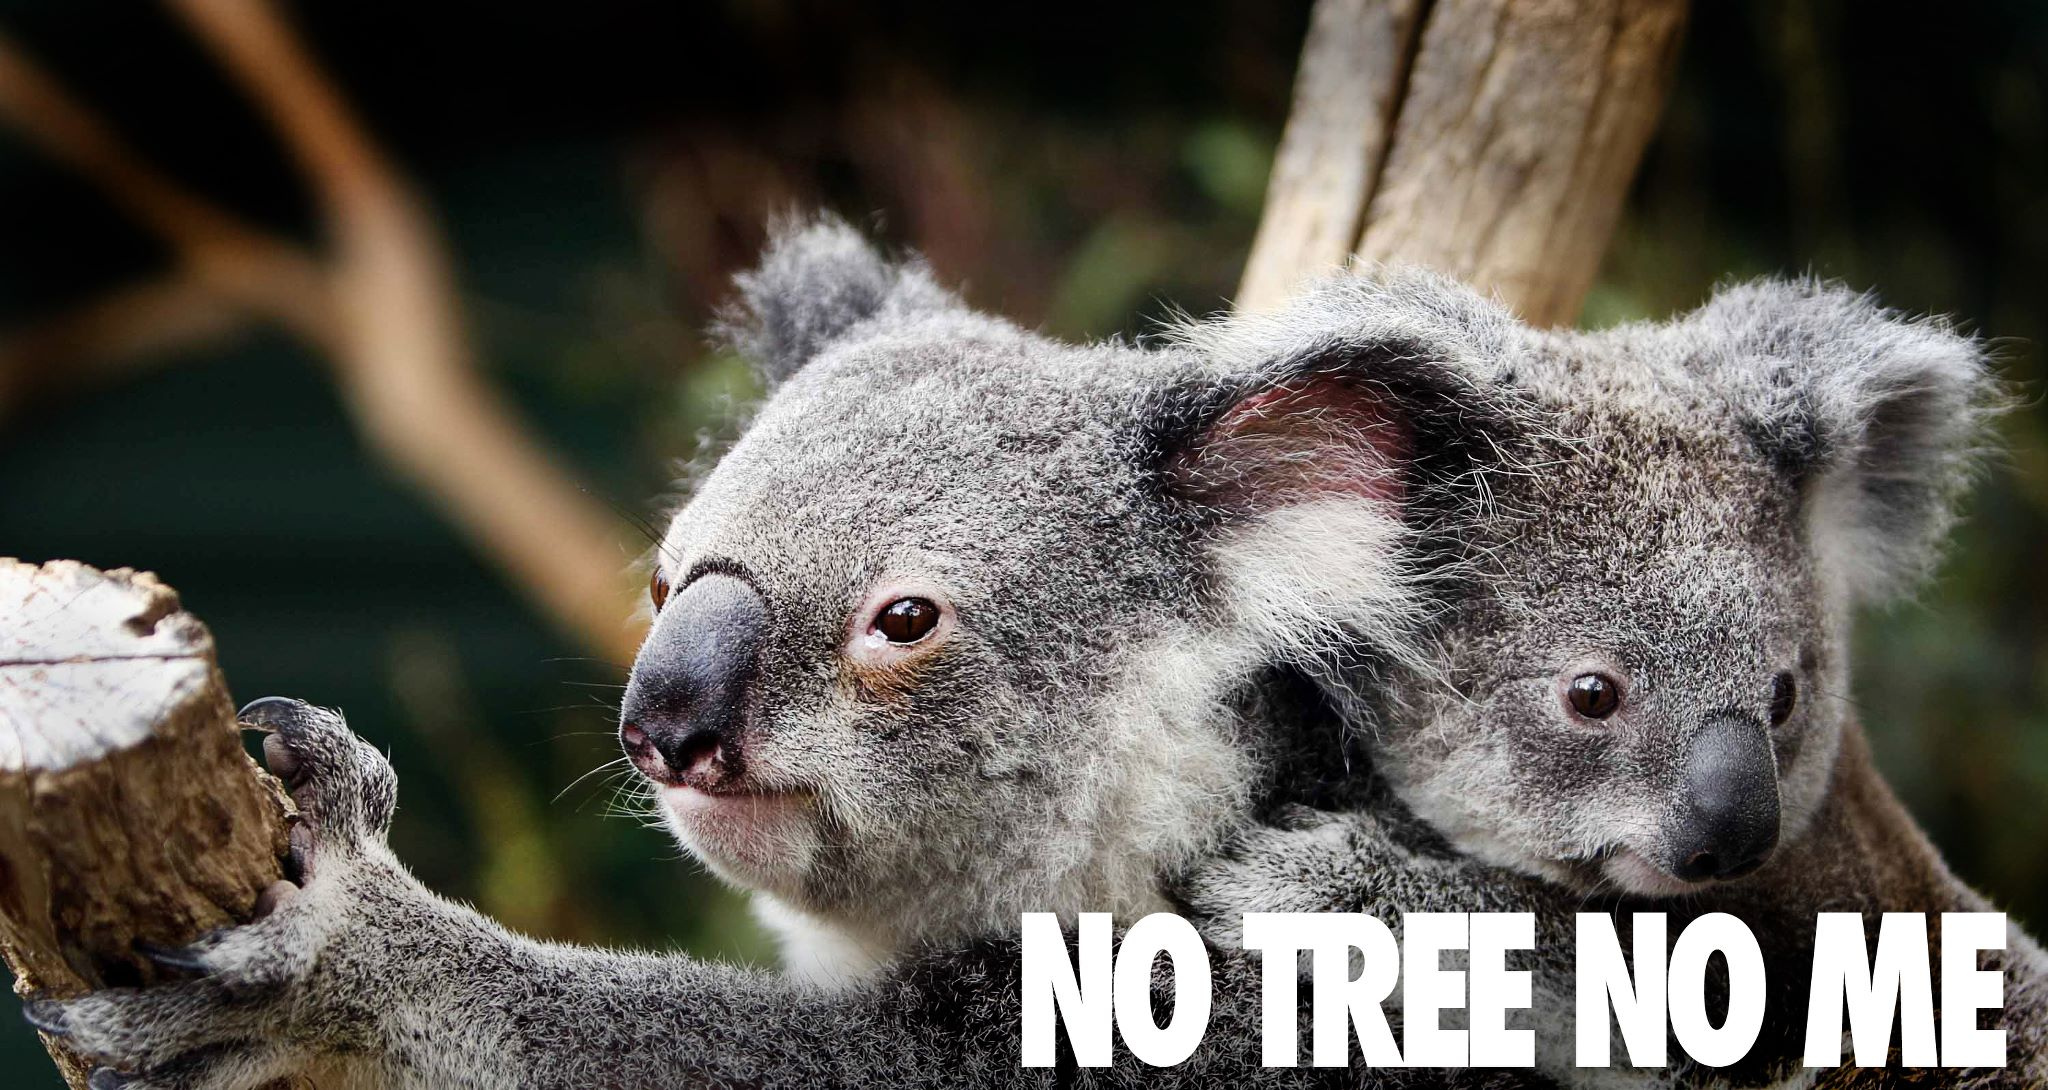 Luxury Tech Gifts Koalas Face Extinction Without Stronger Protection Say